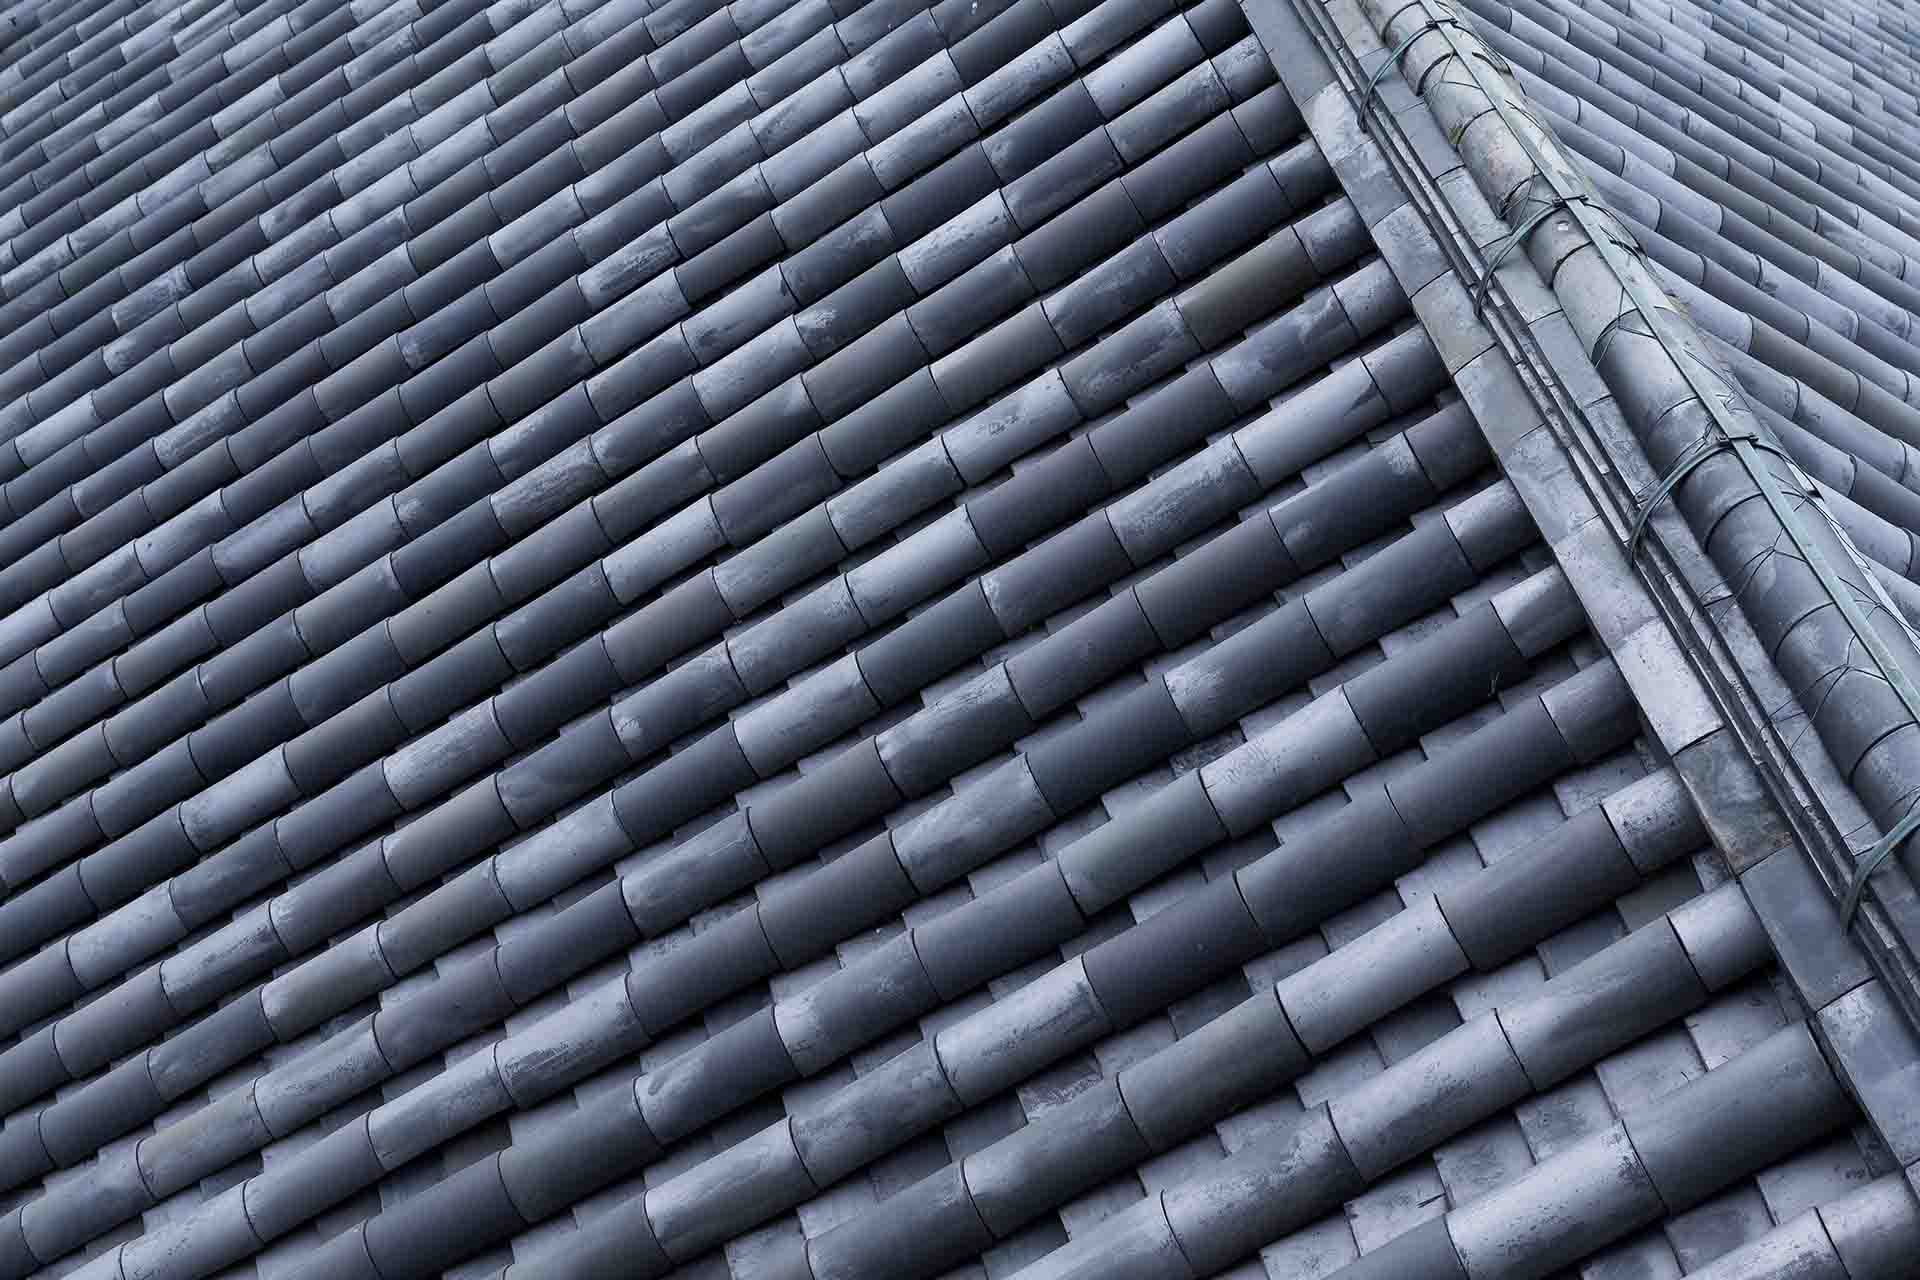 What do I need to know before hiring a roofing contractor?